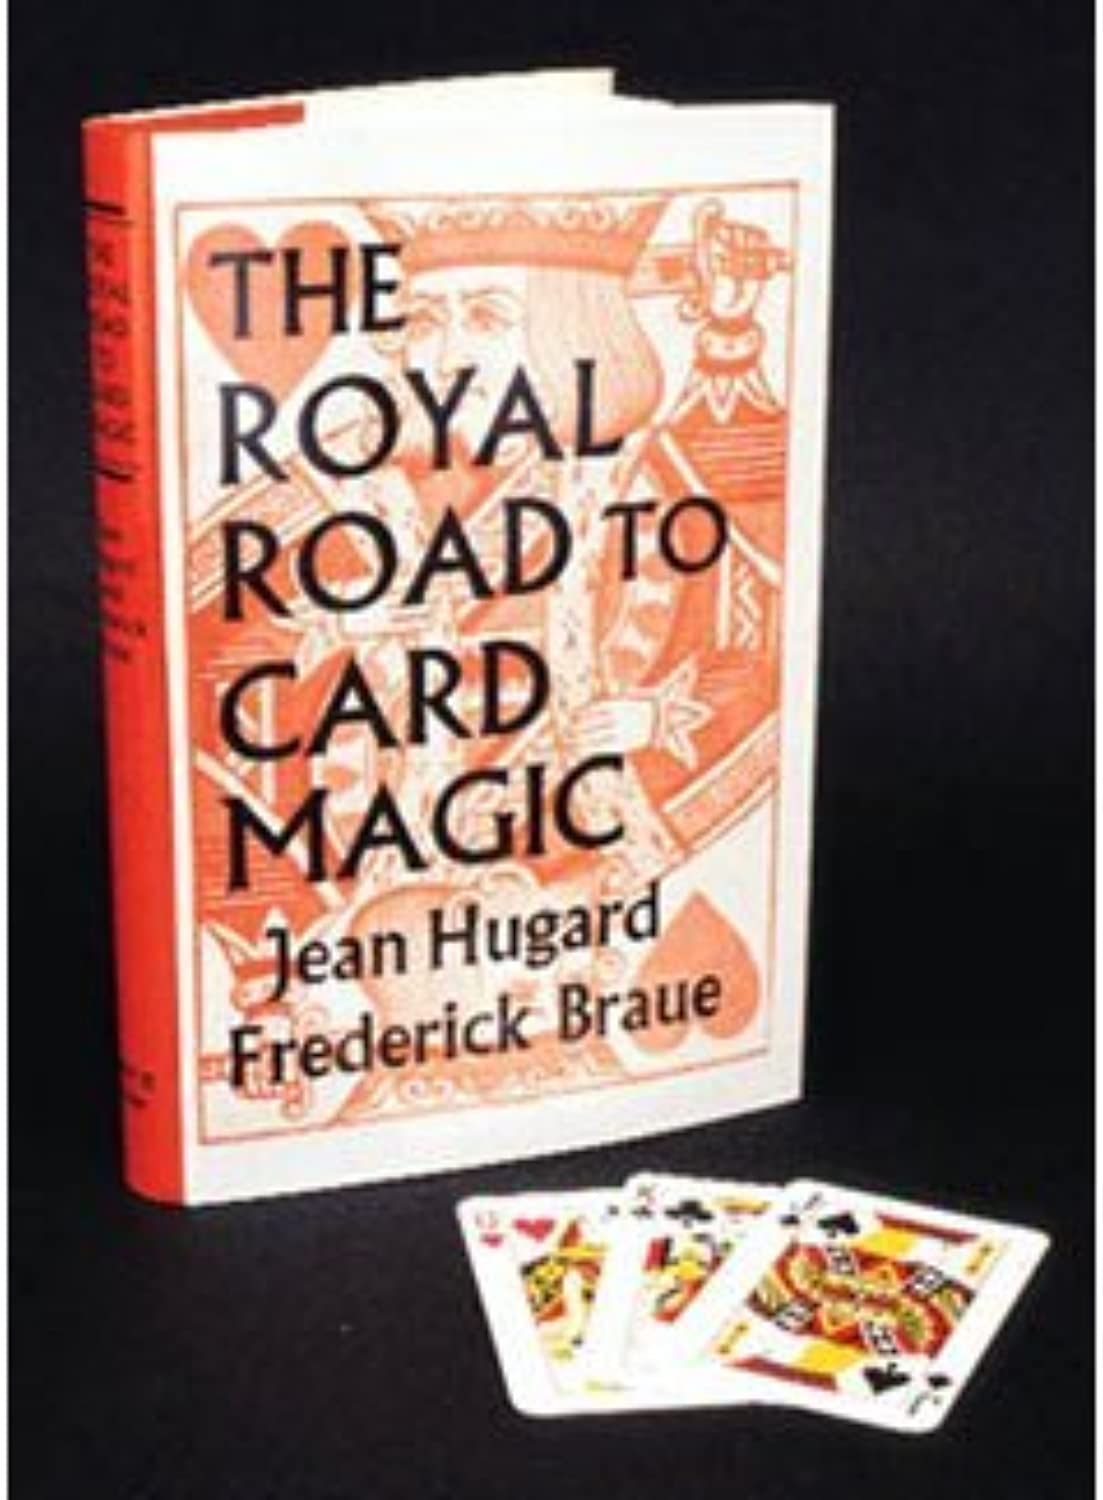 Loftus International Royal Road to Card Magic Book by Loftus International